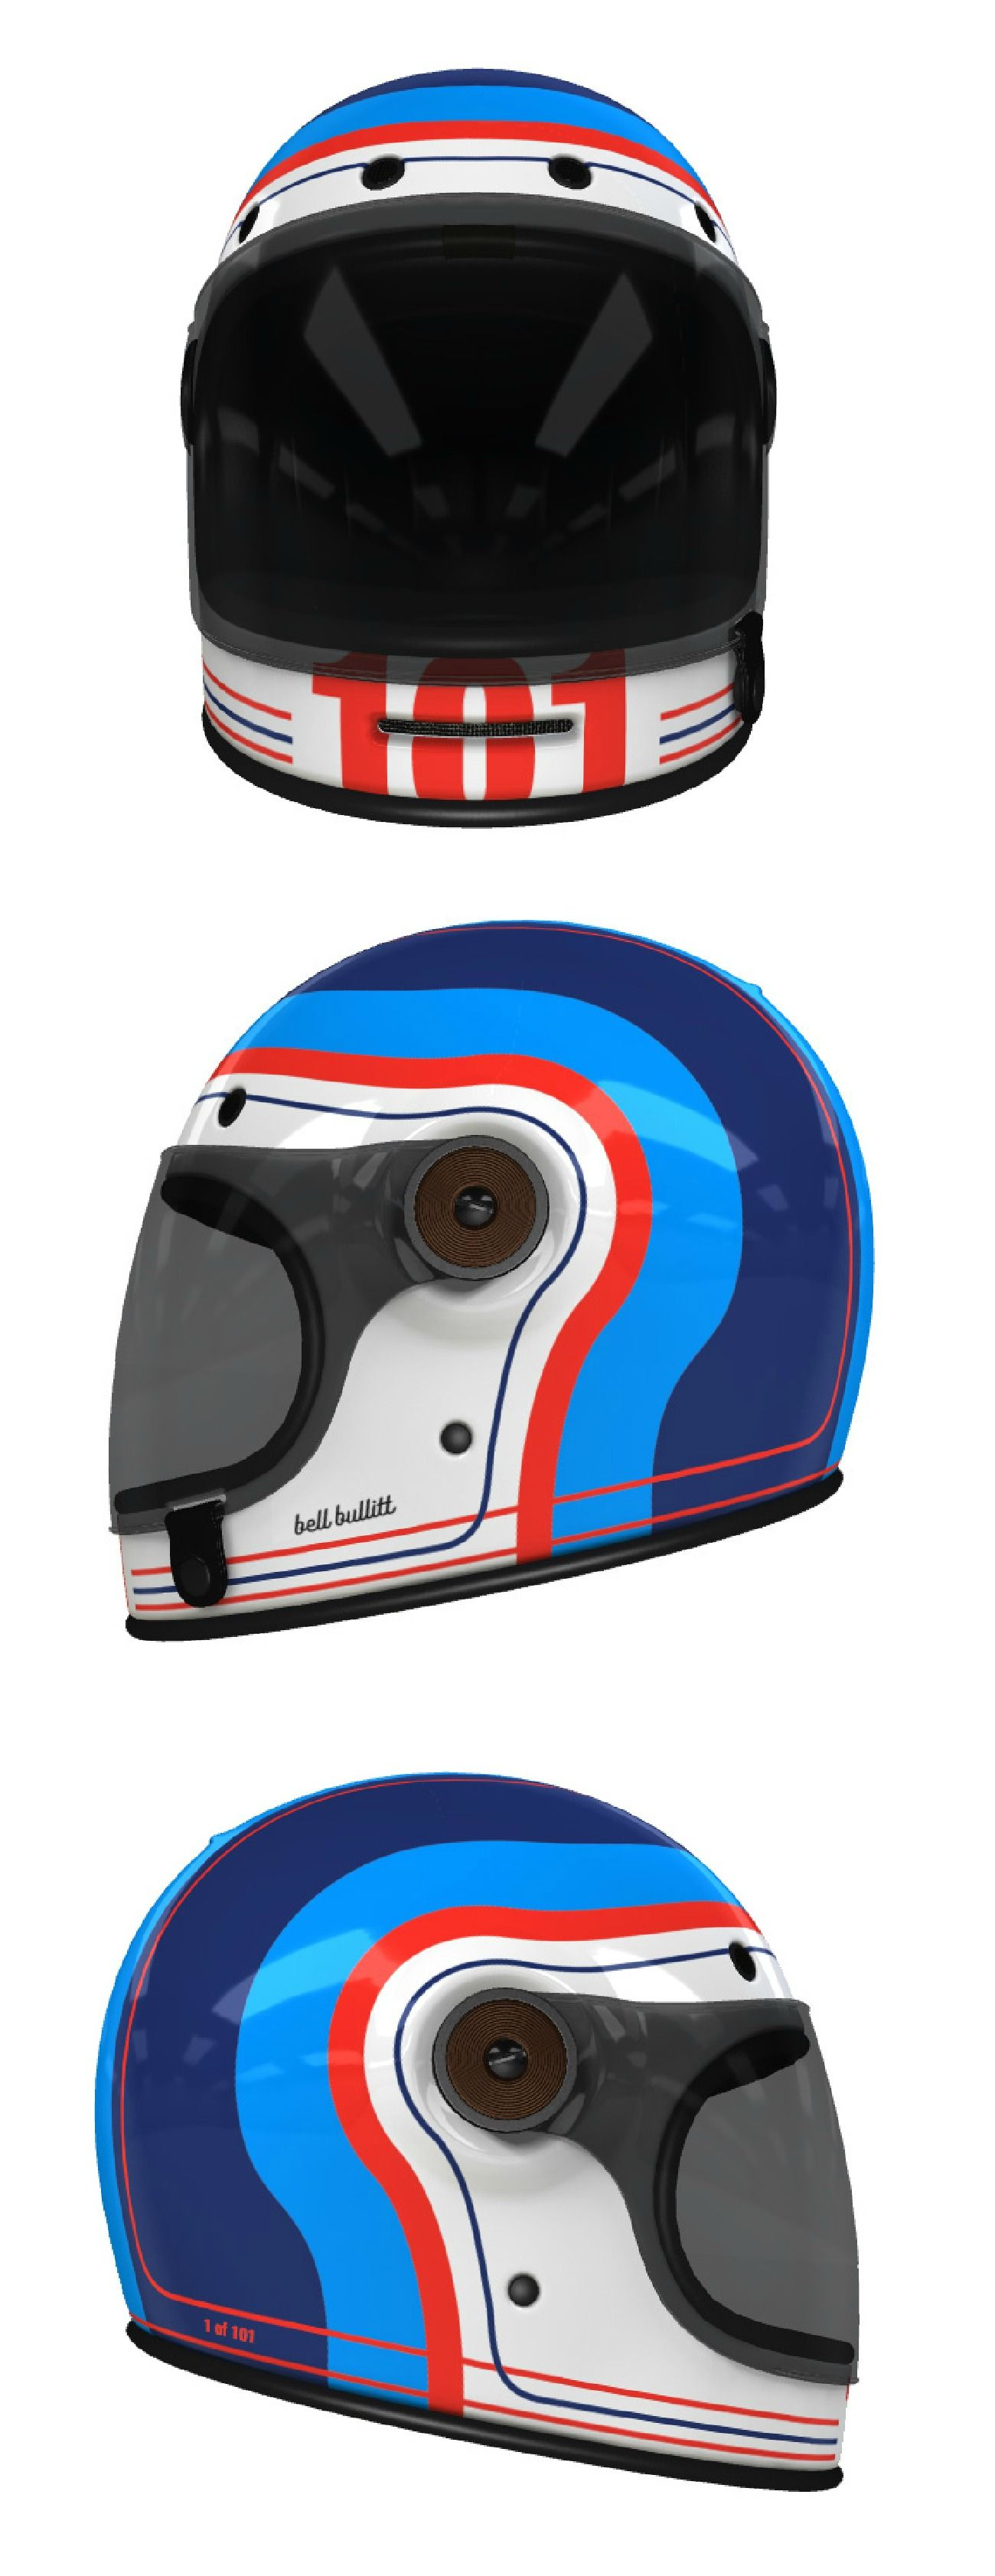 Pin On Motorcycle Helmets With Style